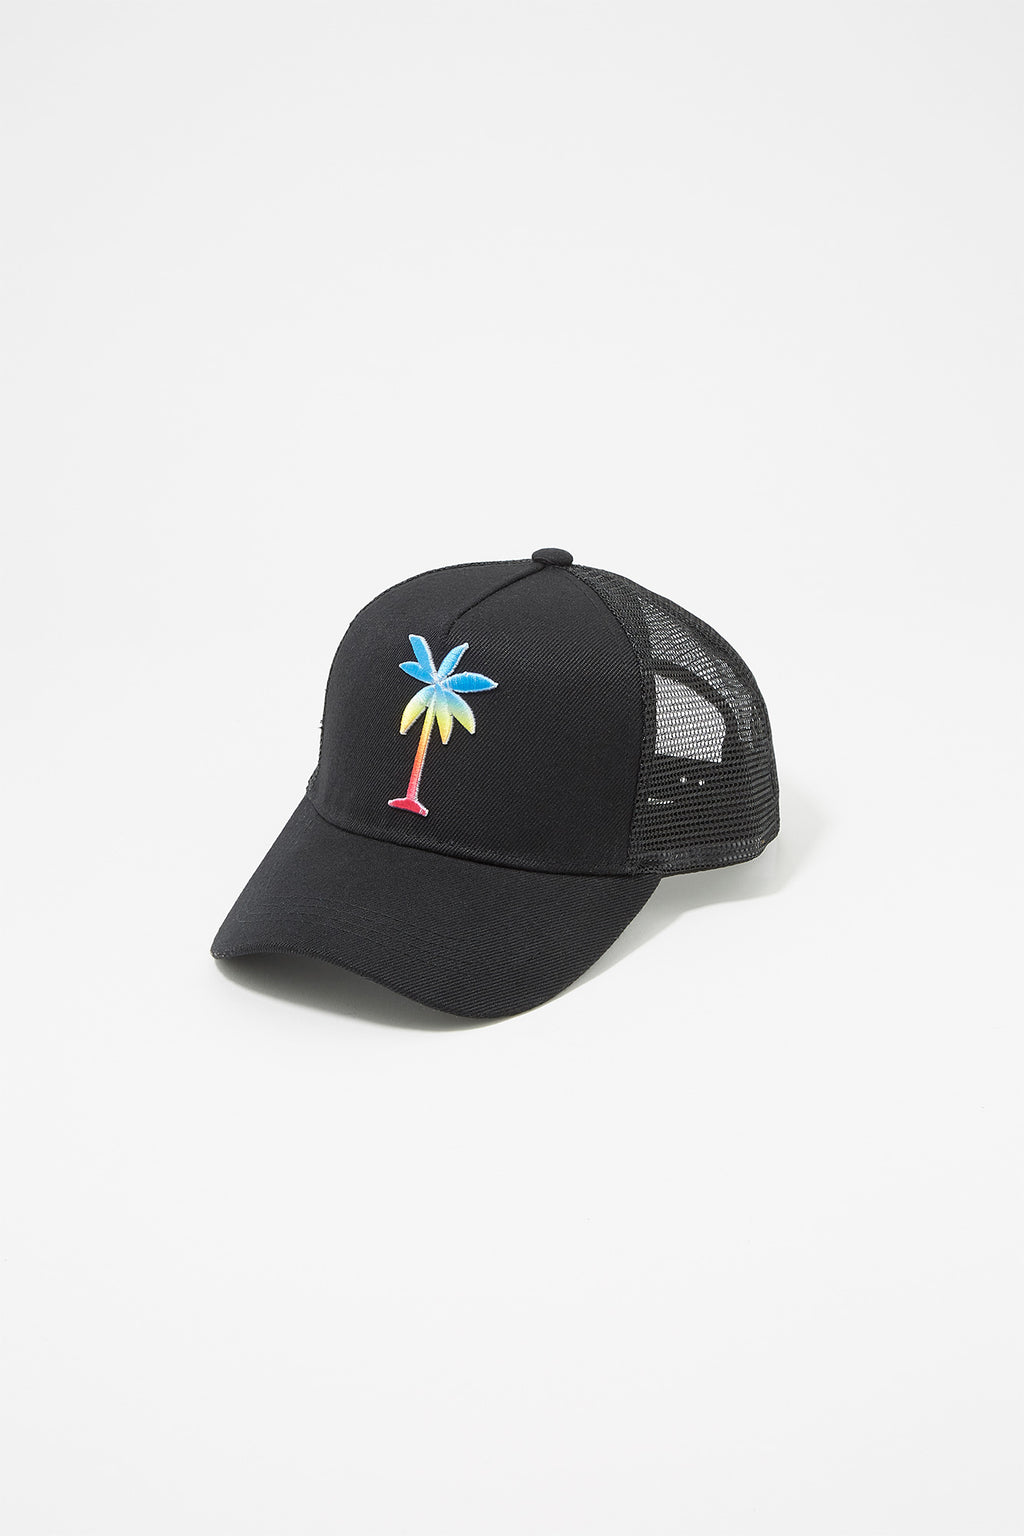 4b6aec73c5d9c Zoo York Mens Palm Tree Trucker Hat